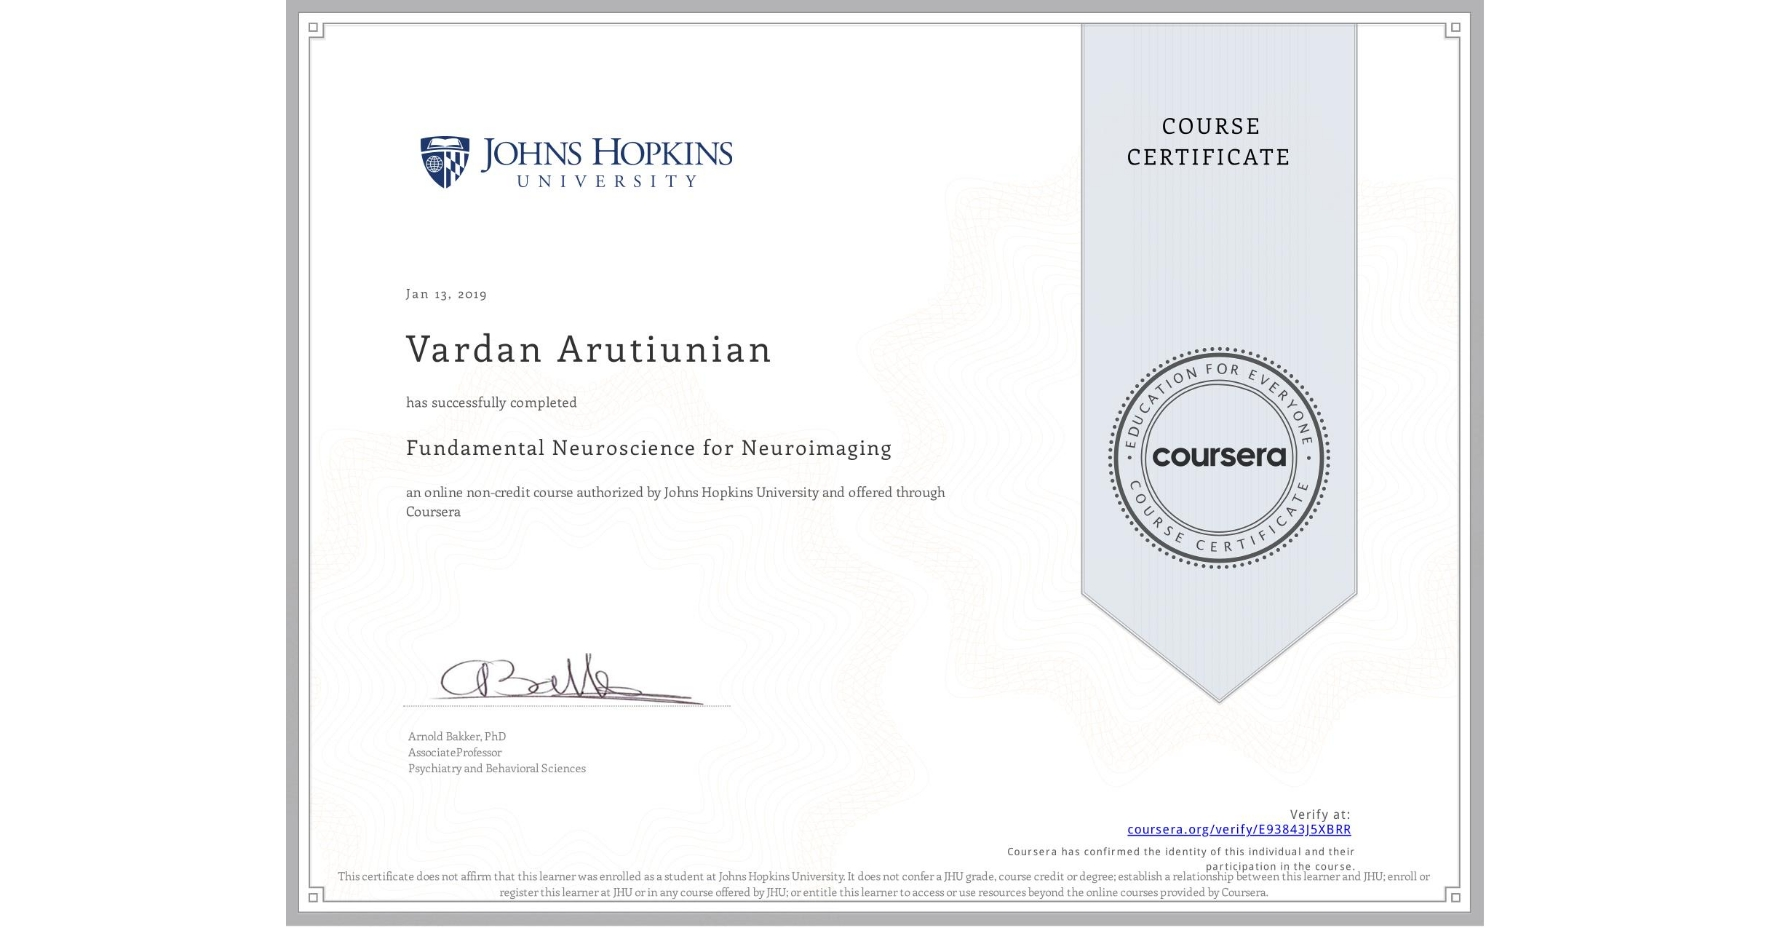 View certificate for Vardan Arutiunian, Fundamental Neuroscience for Neuroimaging, an online non-credit course authorized by Johns Hopkins University and offered through Coursera